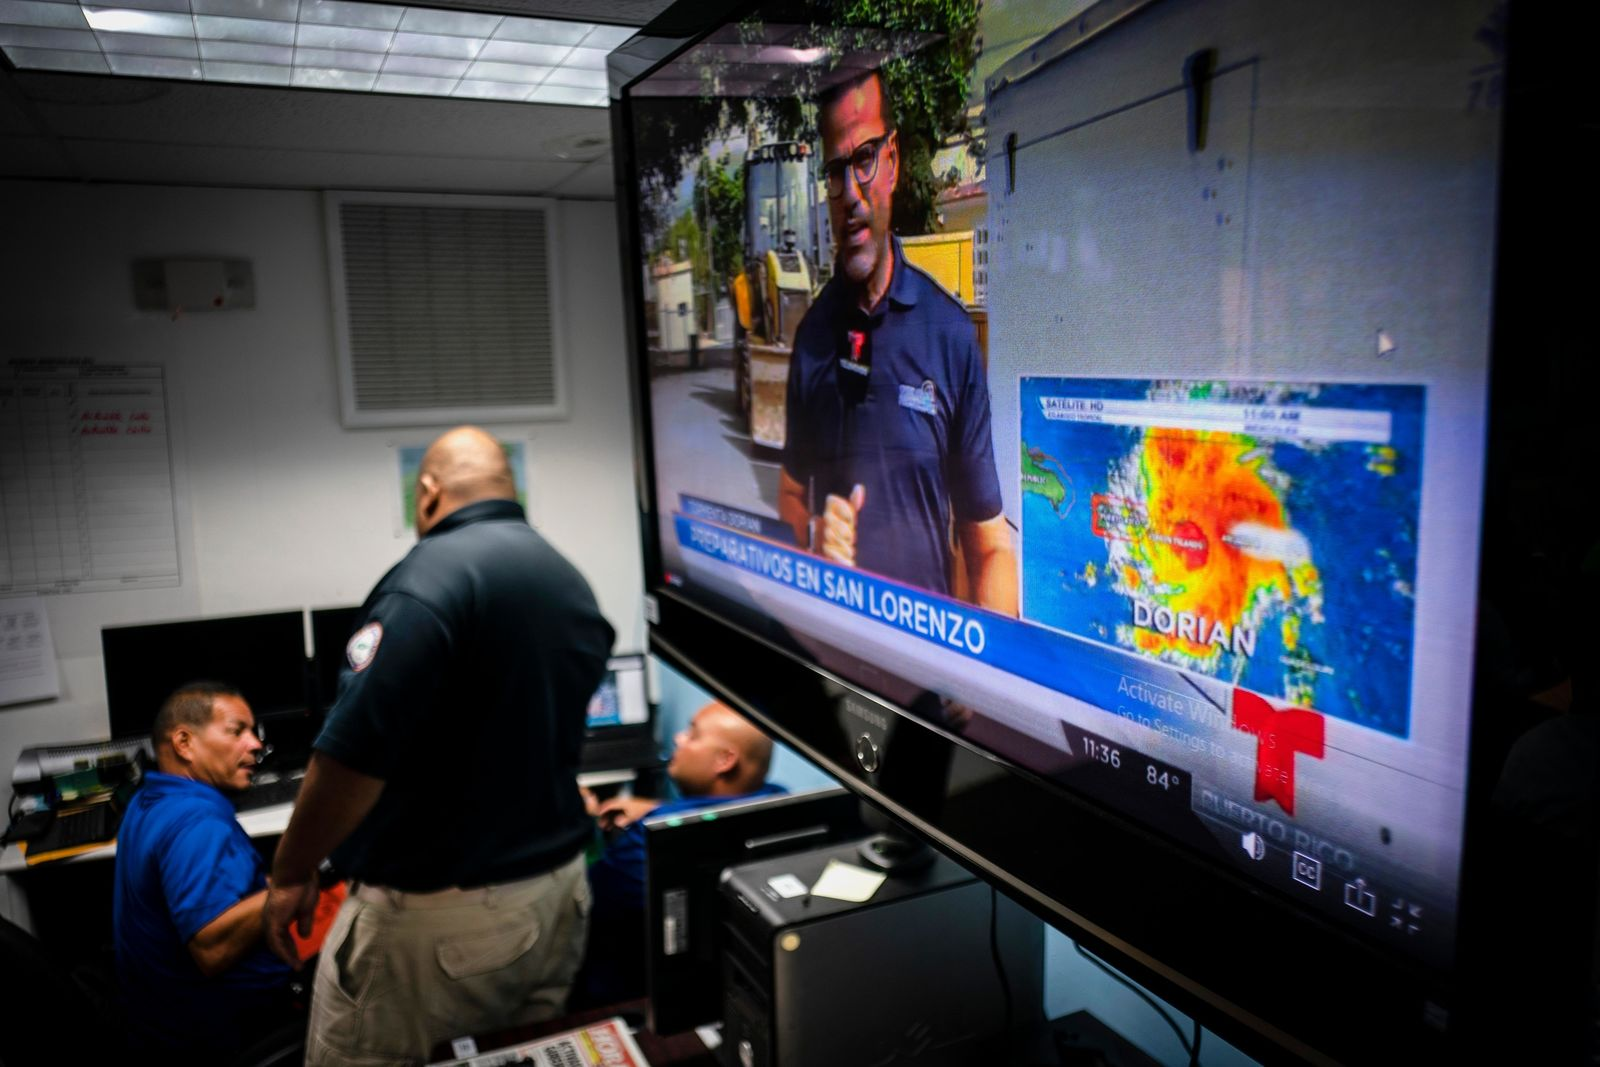 Emergency Center personnel stand next to a tv screen showing a meteorological image of the tropical storm Dorian, as they await its arrival, in Ceiba, Puerto Rico, Wednesday, Aug. 28, 2019. (AP Photo/Ramon Espinosa)